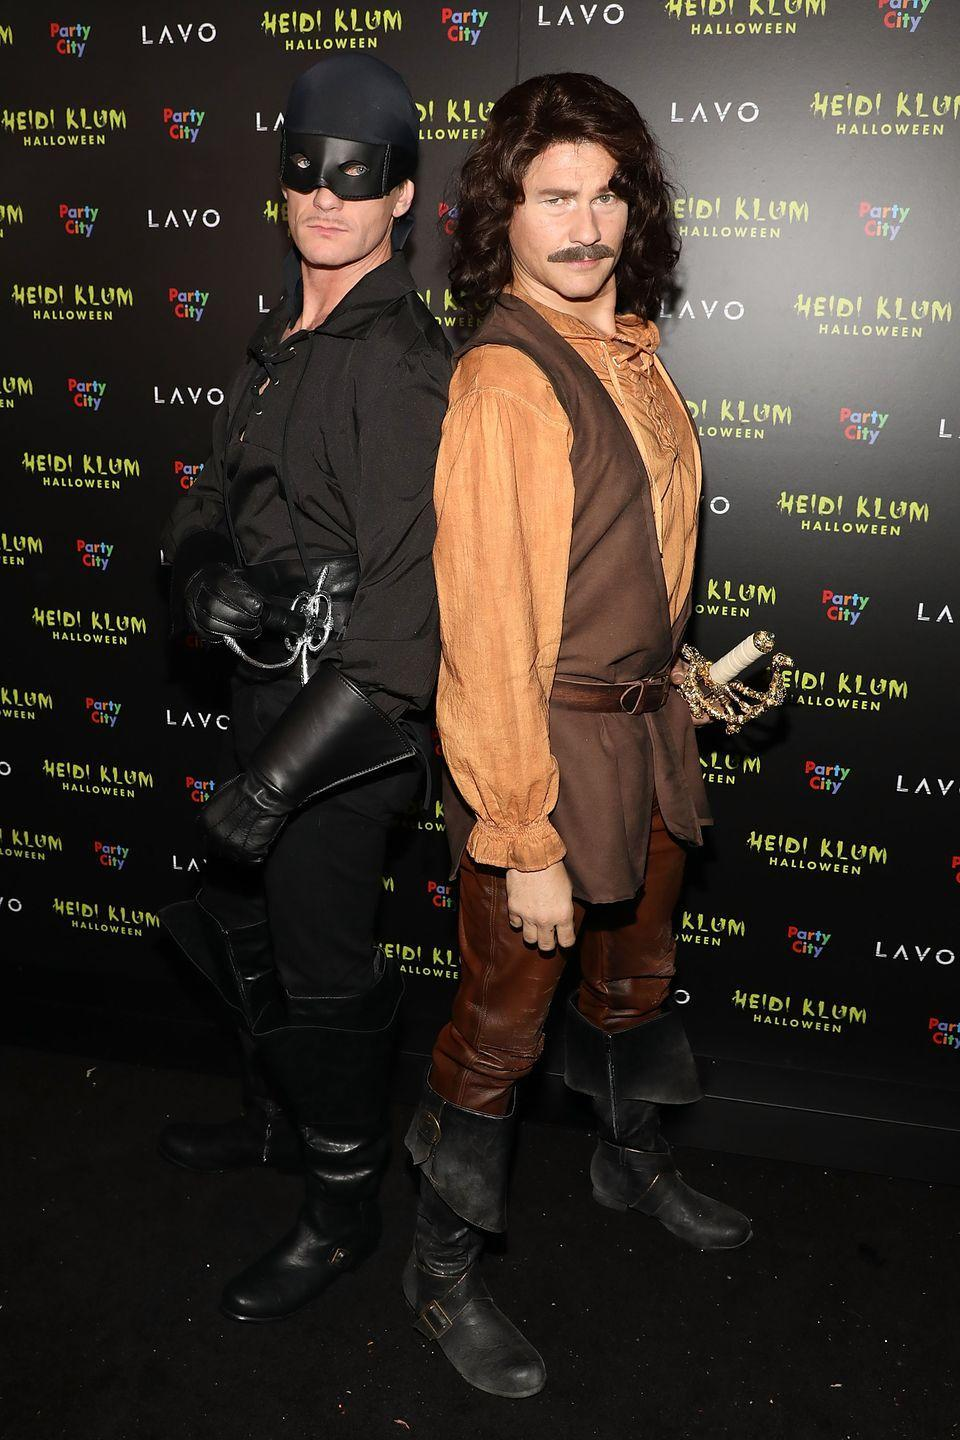 <p>Neil Patrick Harris and husband David Burtka rolled up to Heidi Klum's 2018 Halloween party completely decked out as two beloved characters from the classic movie <em>The Princess Bride.</em> For the record, any gender can dress these iconic parts.</p>